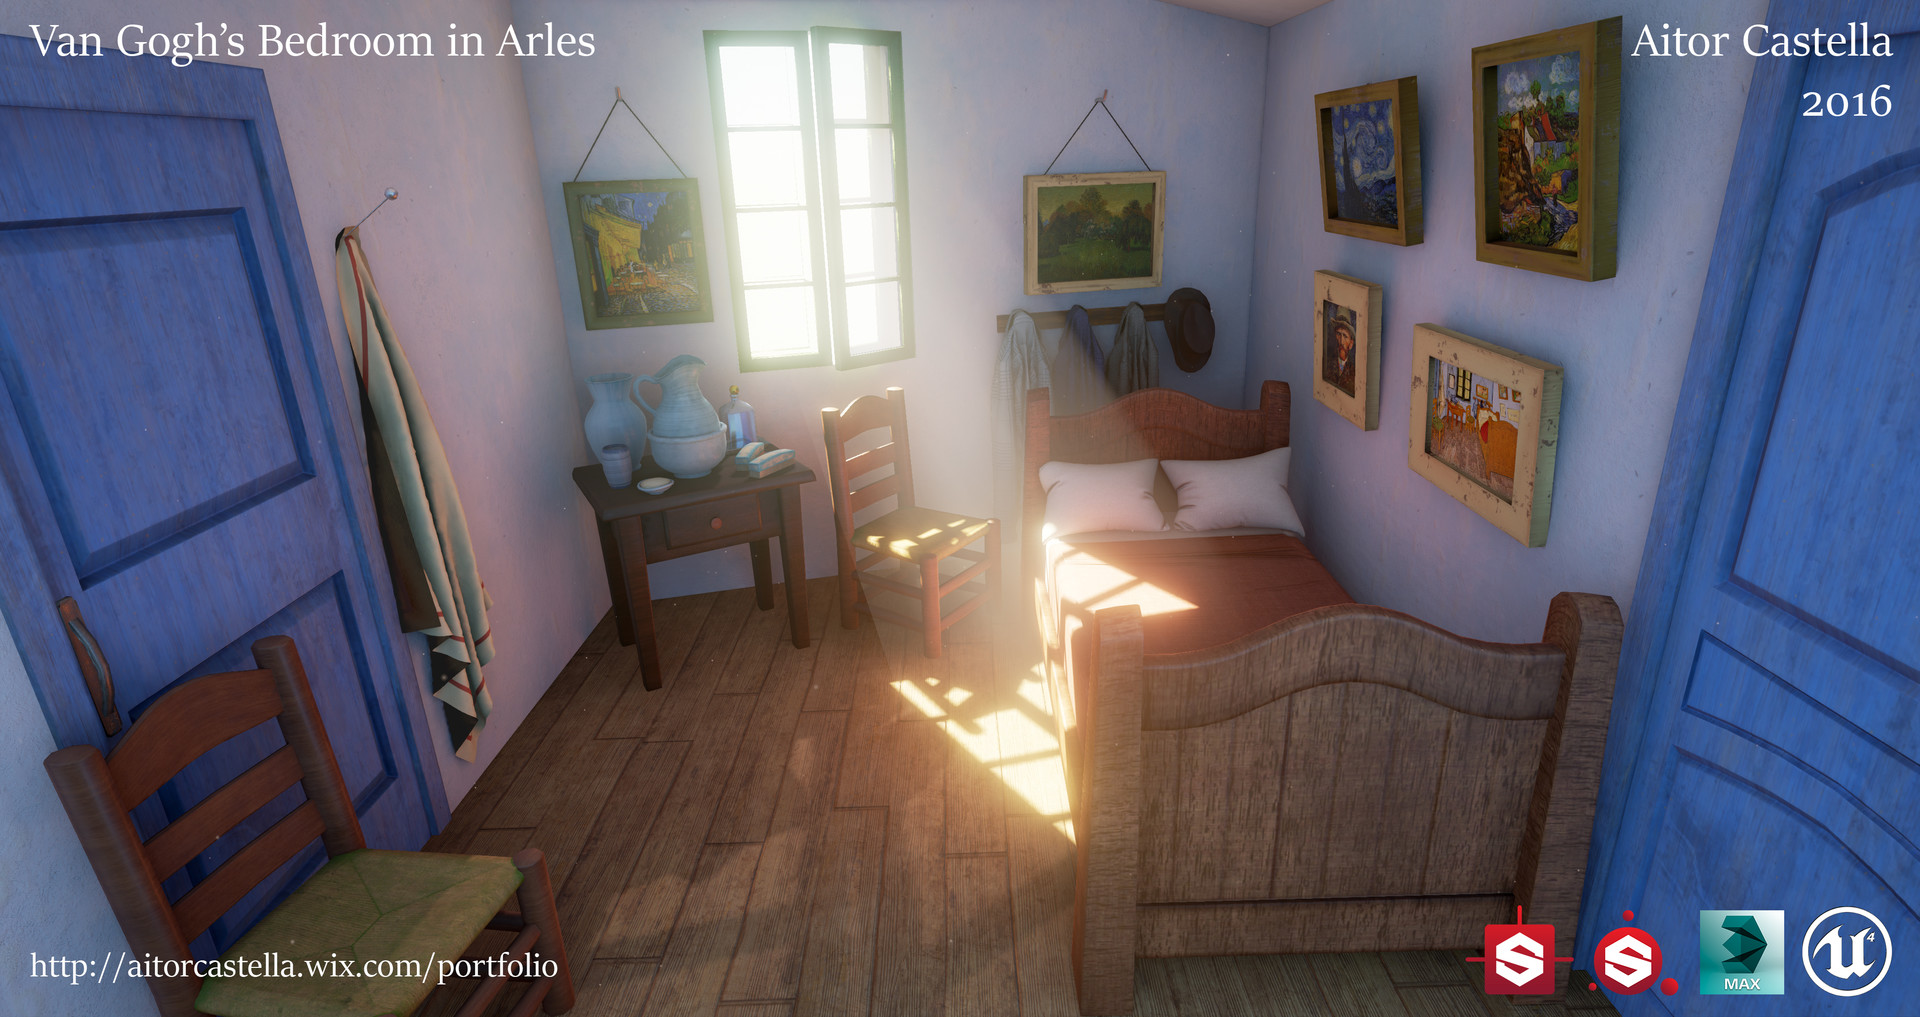 artstation - van gogh's bedroom in arles, aitor castella